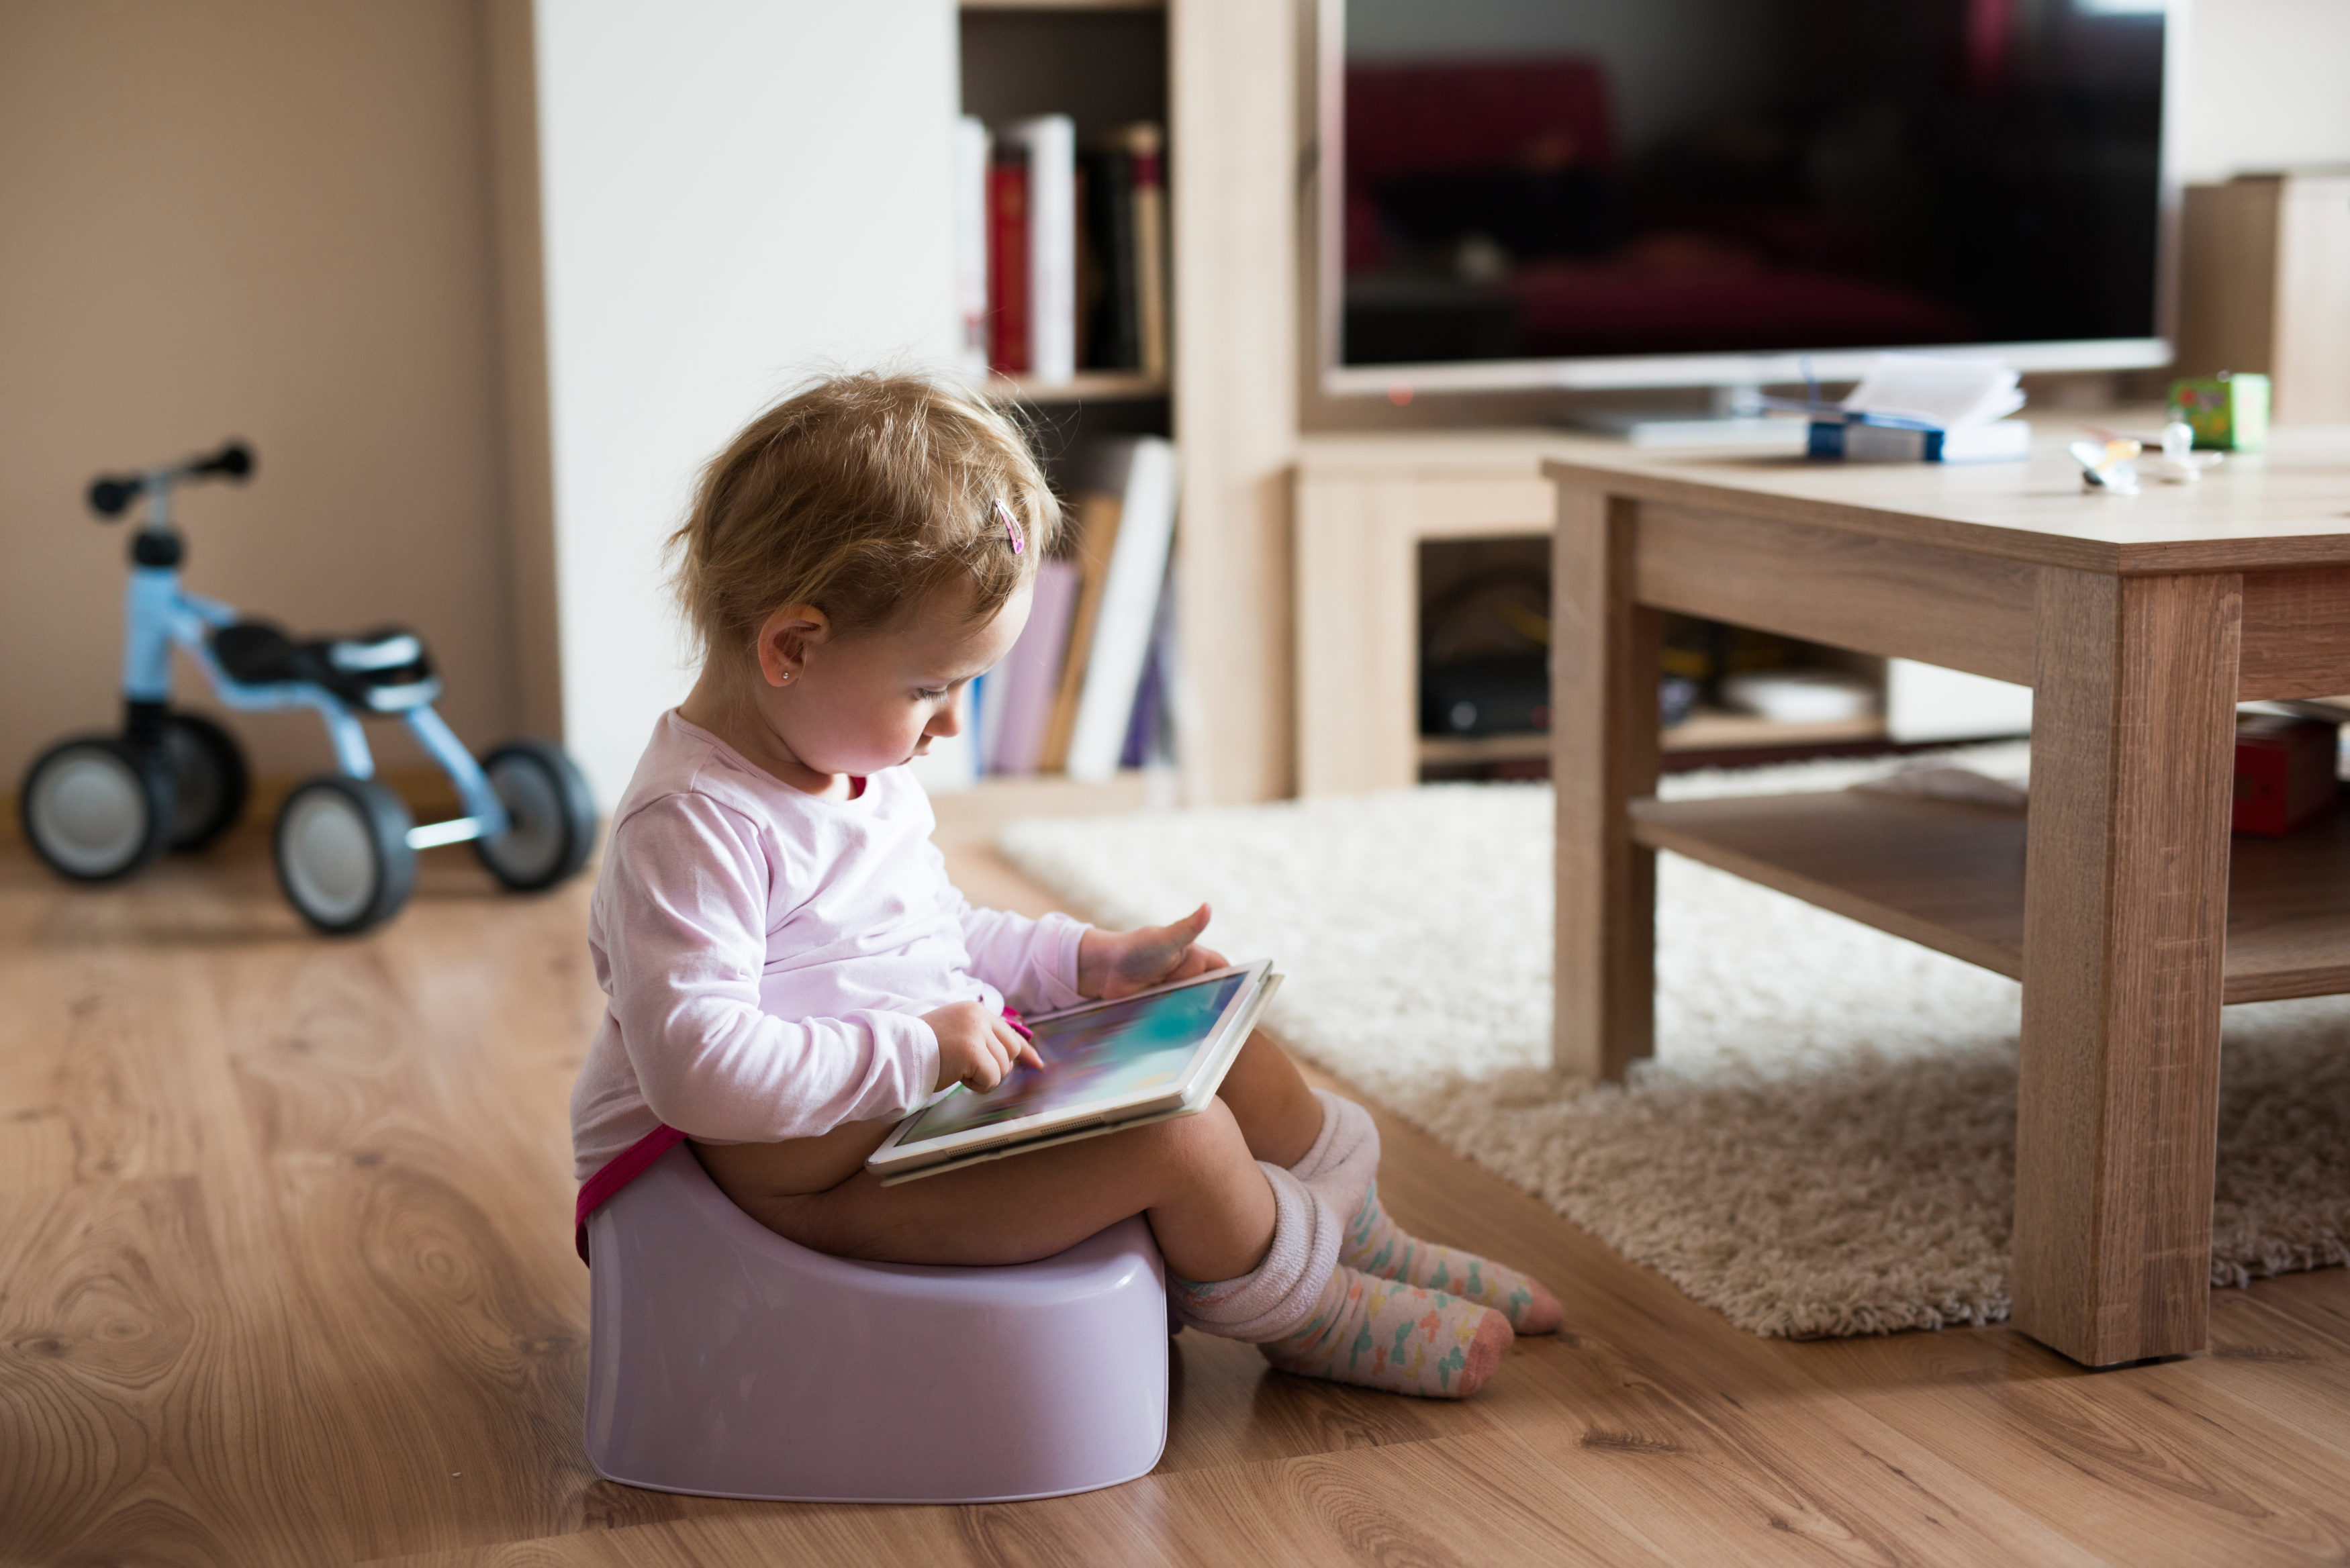 Potty Training Made Fun for Everyone at Any Stage